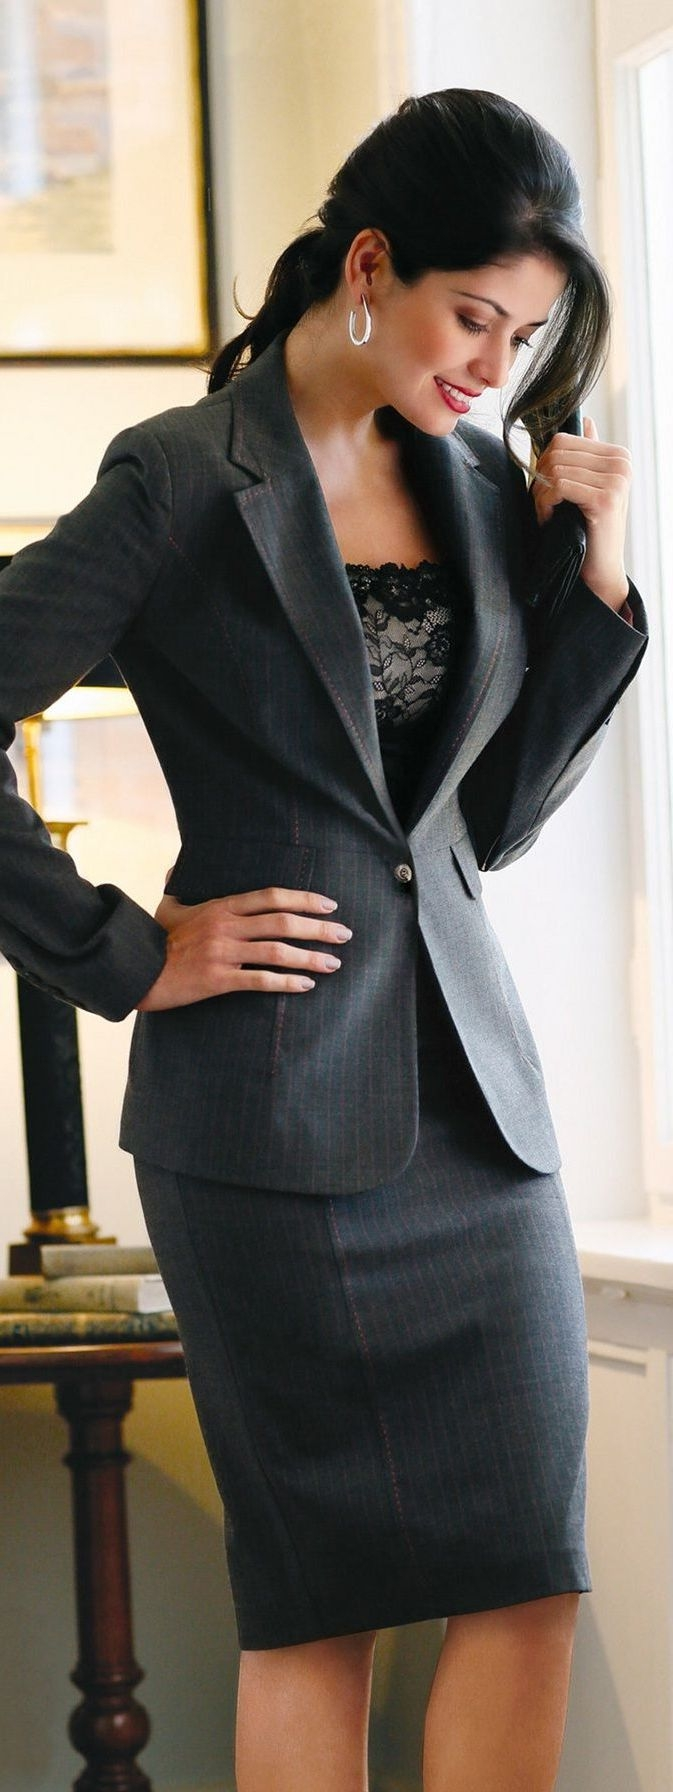 office attire lace clothing to wear at work 2021